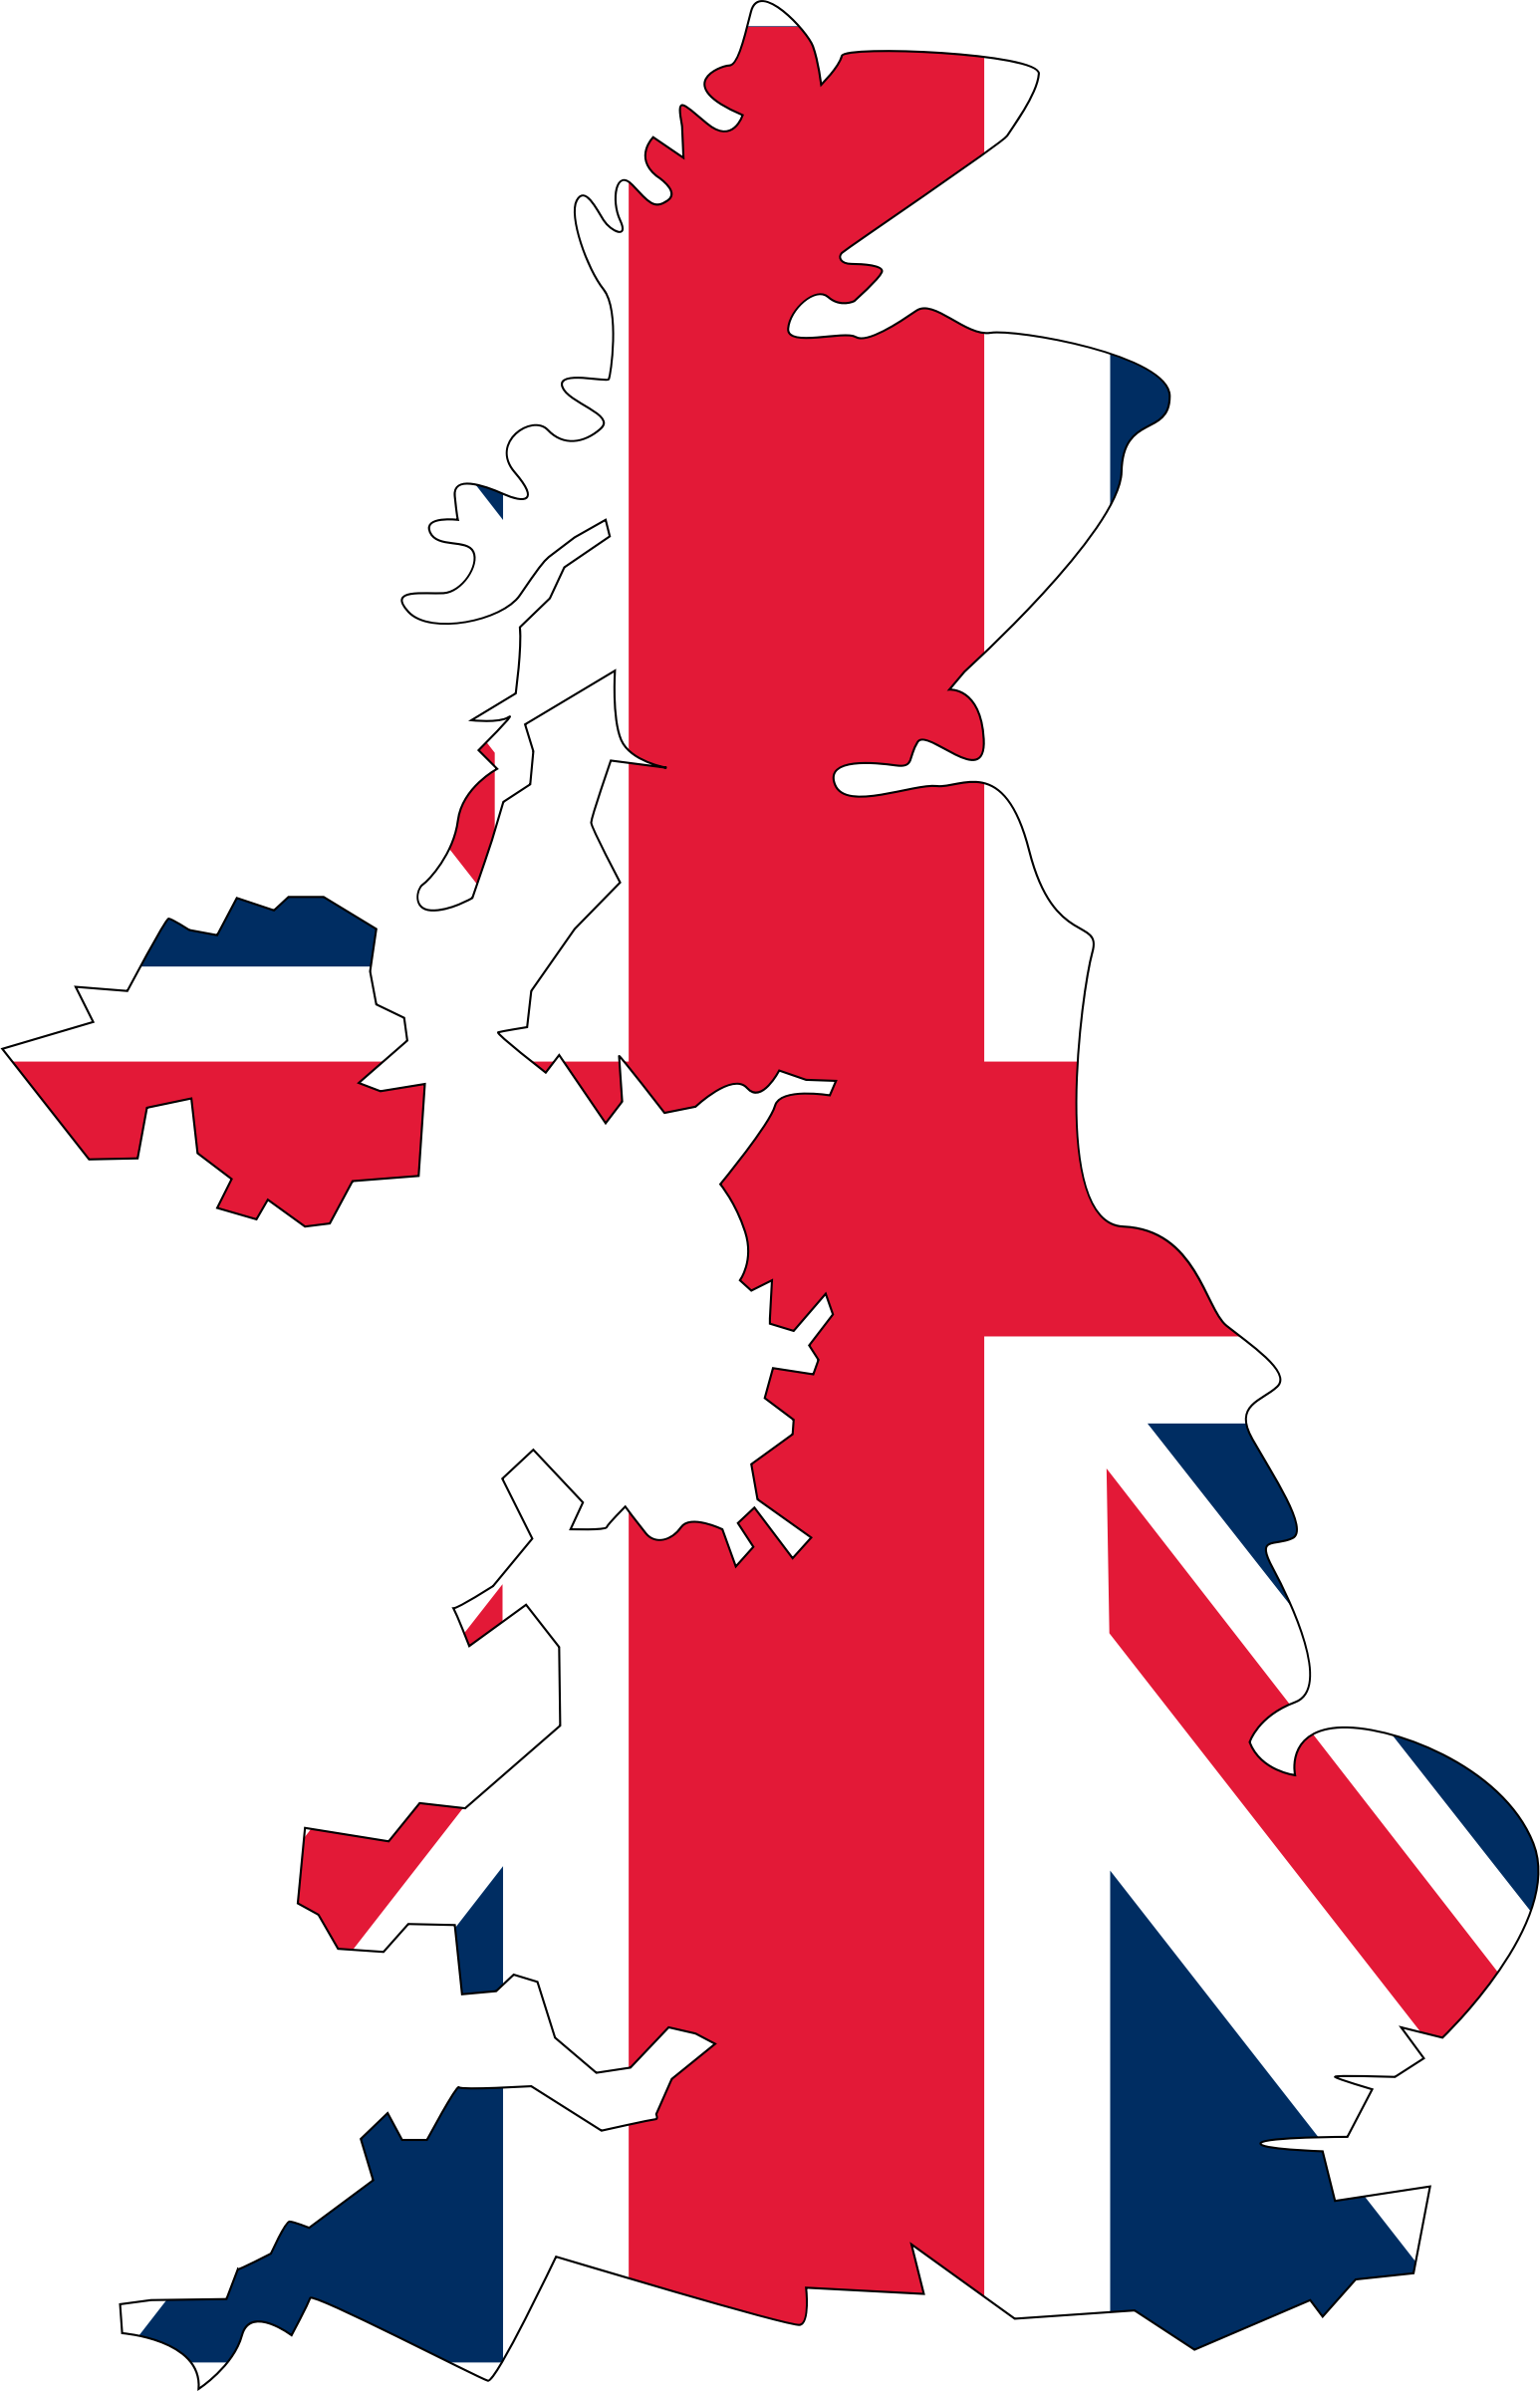 London clipart flag. United kingdom map by